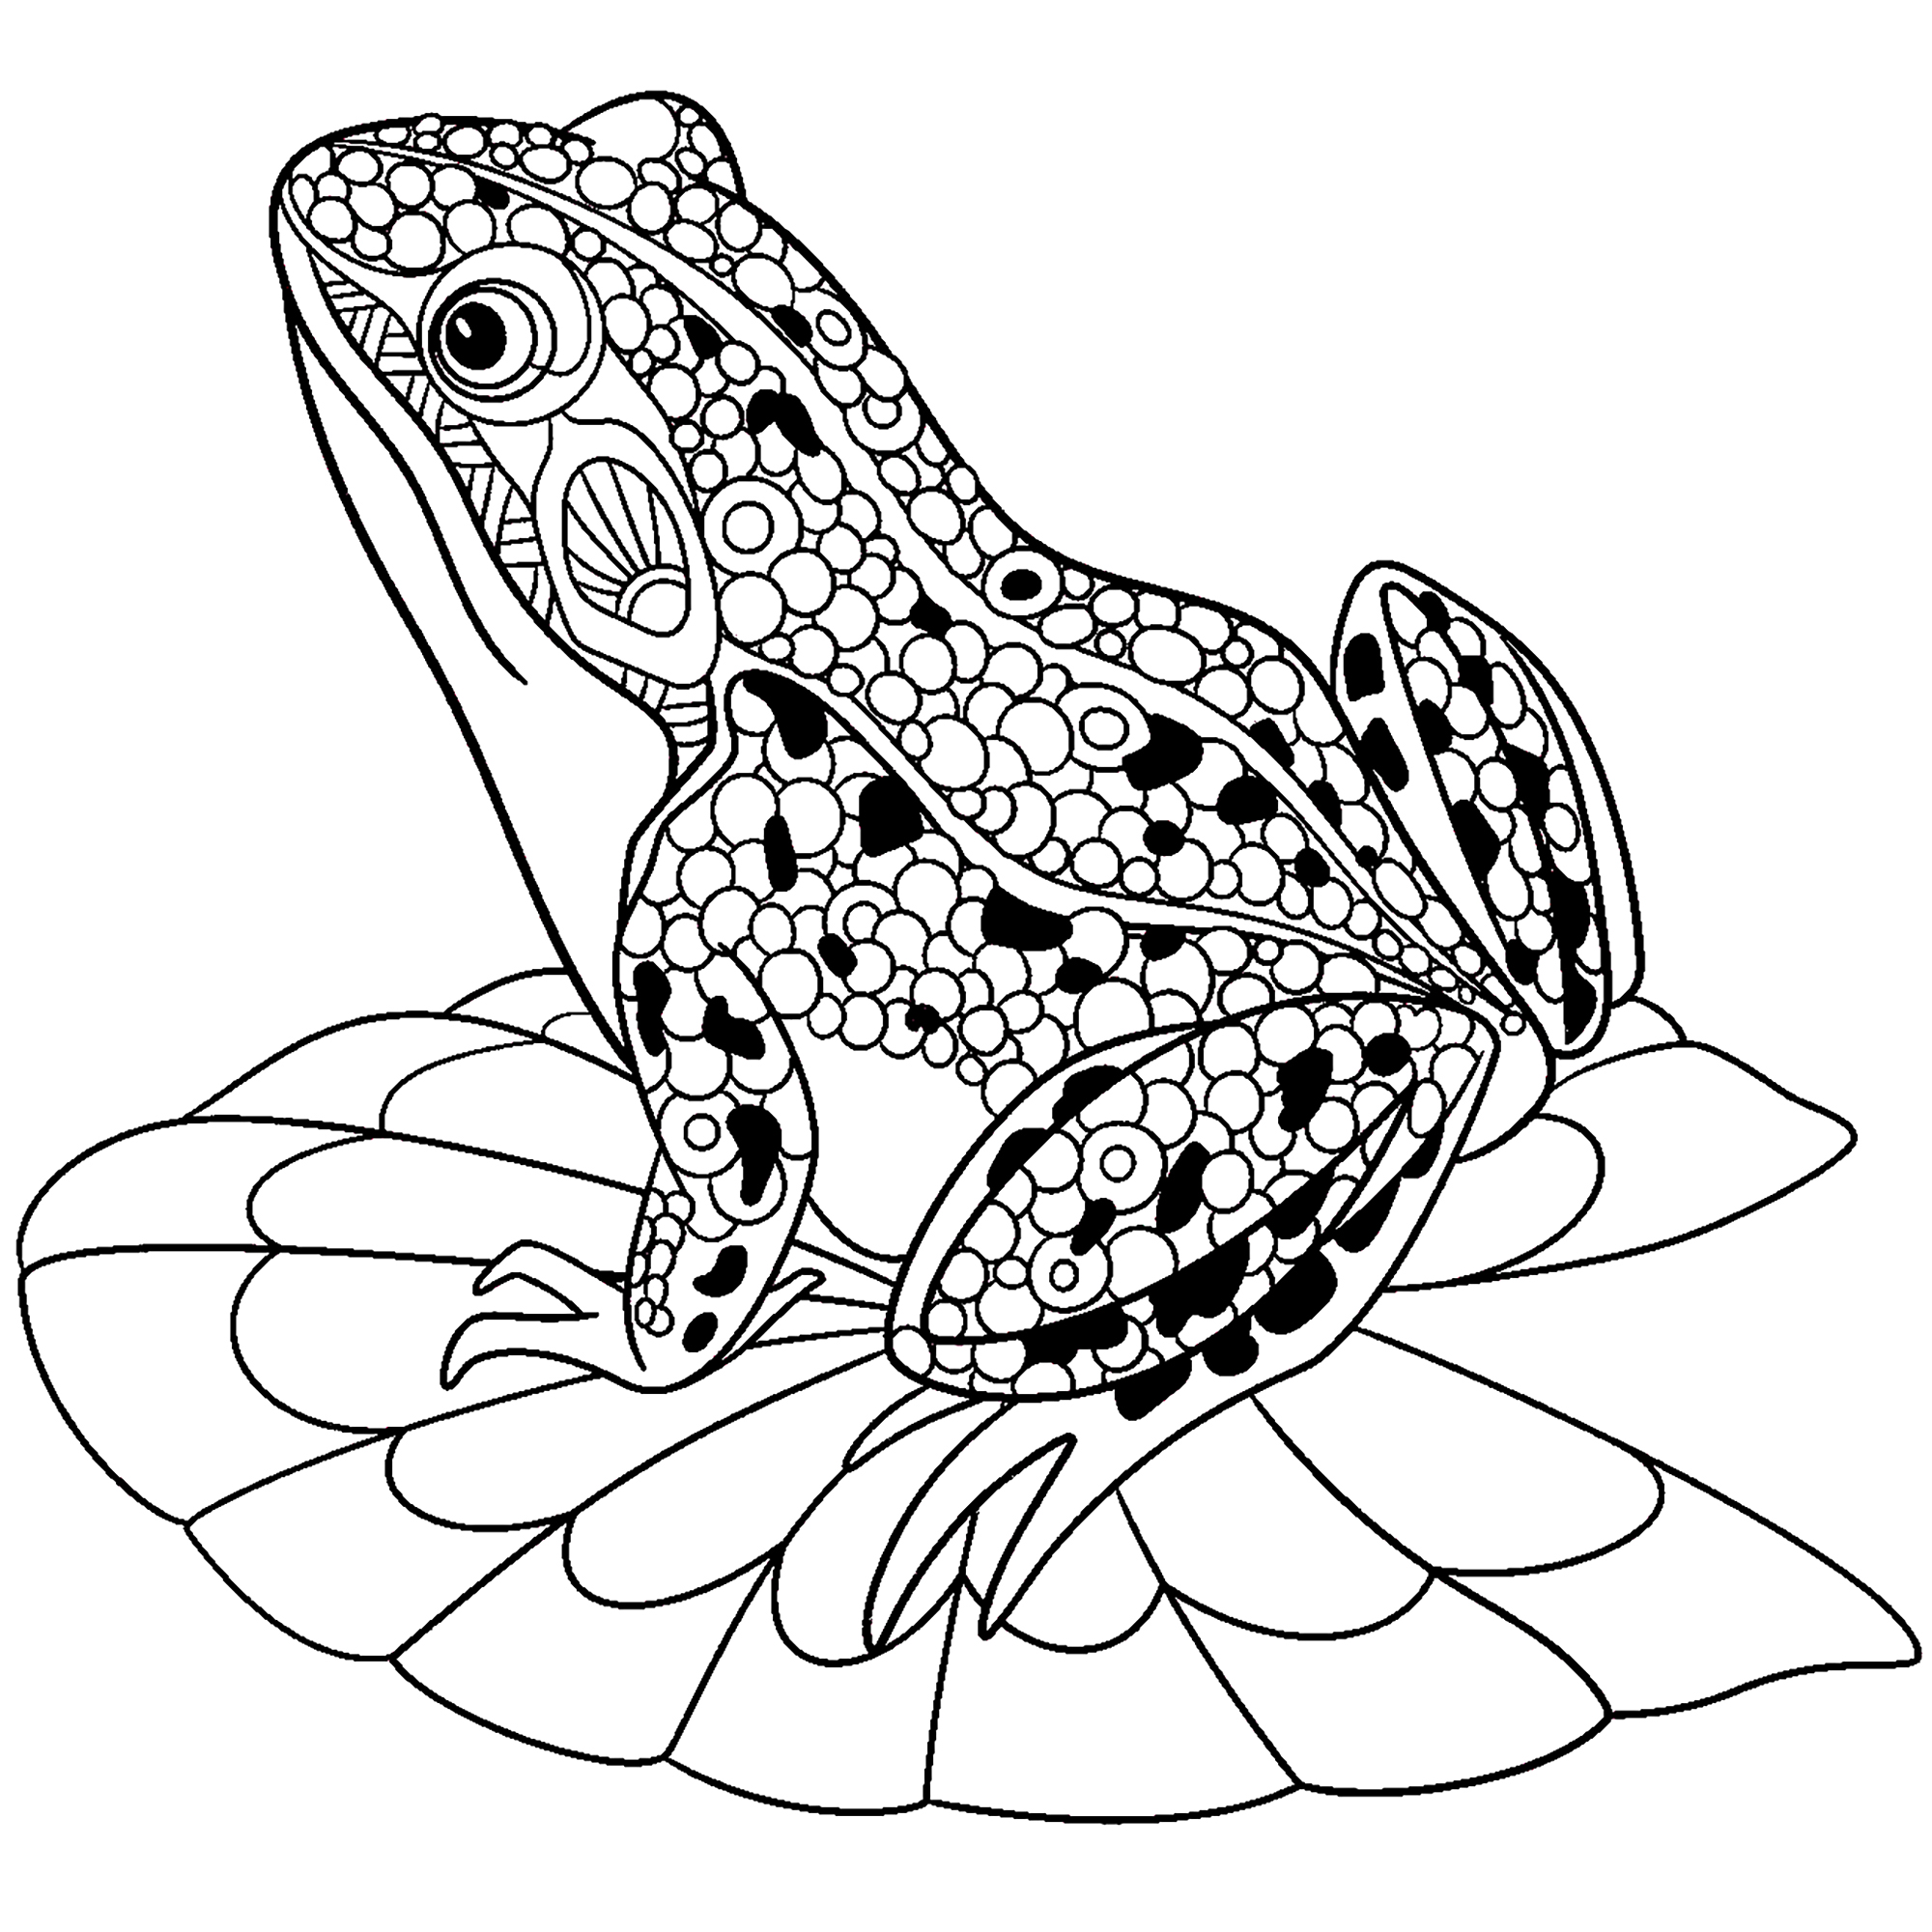 frog coloring pages to print free printable frog coloring pages for kids cool2bkids frog pages coloring to print